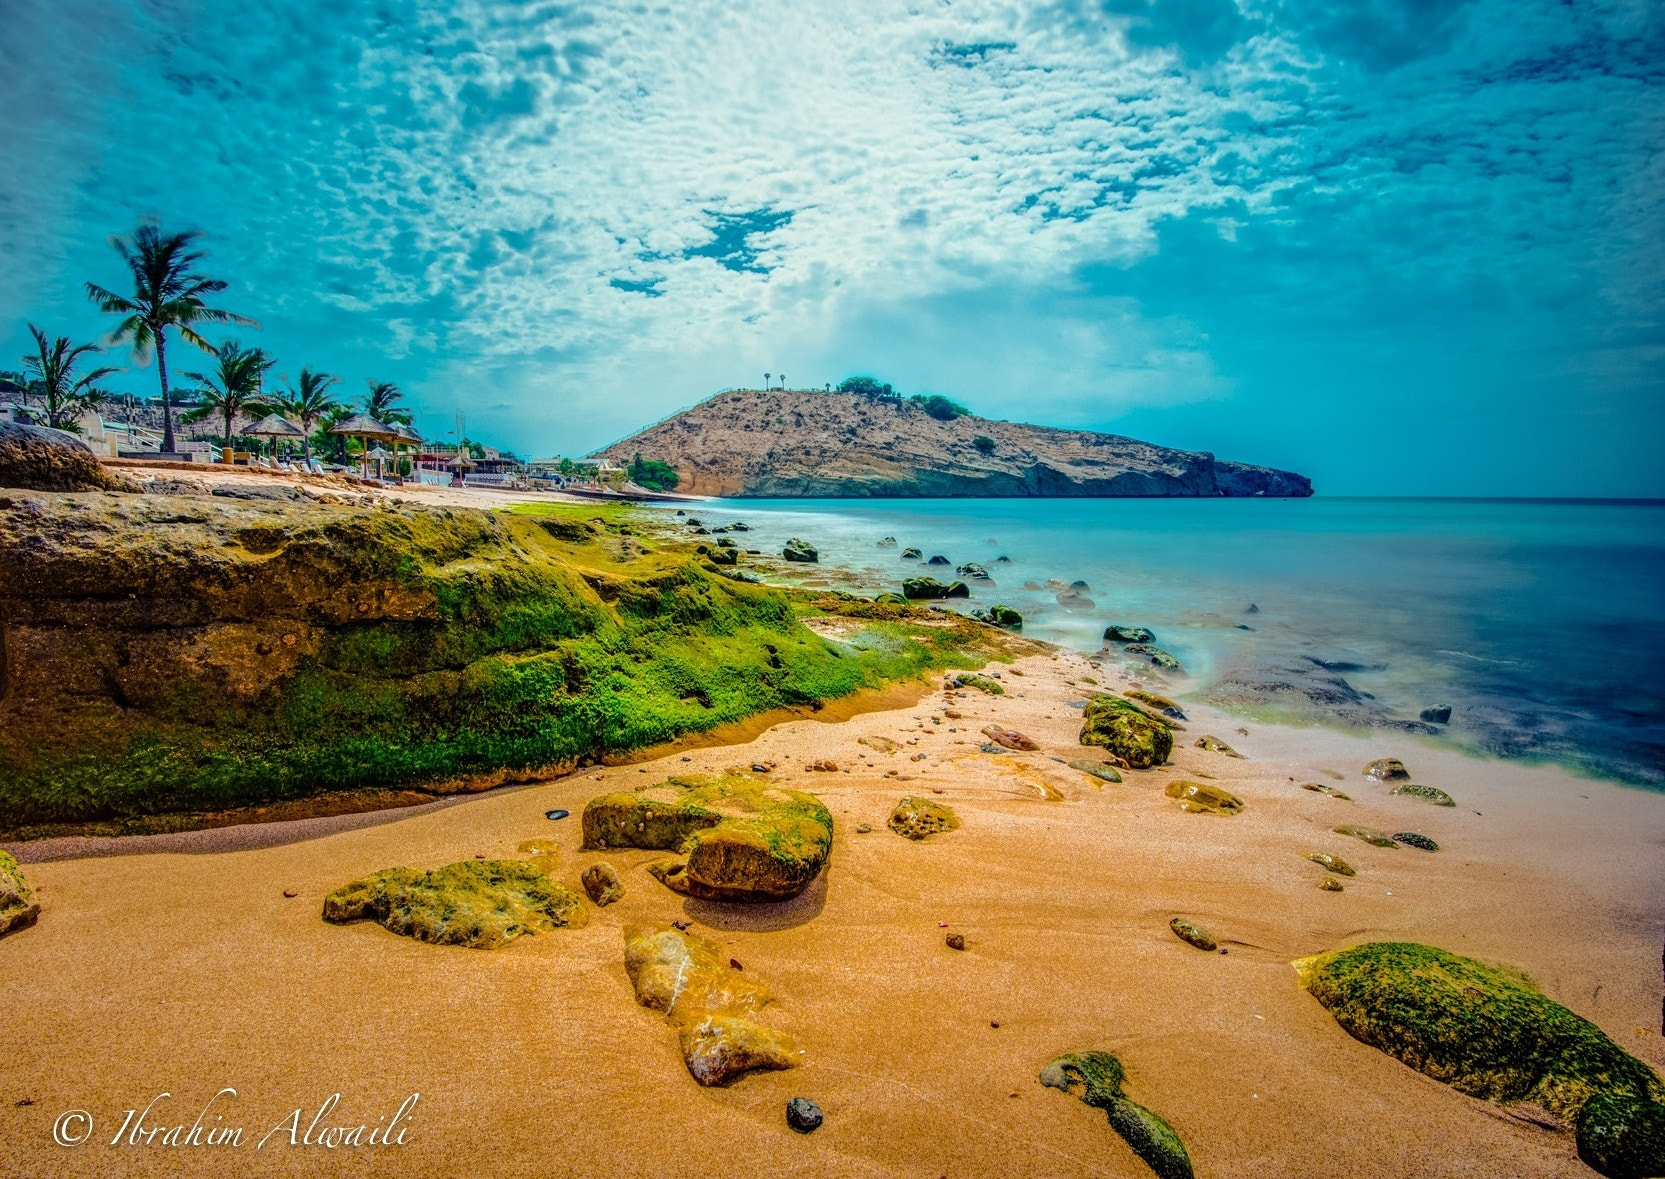 Photograph Dream beach by Ibrahim AlWaili on 500px